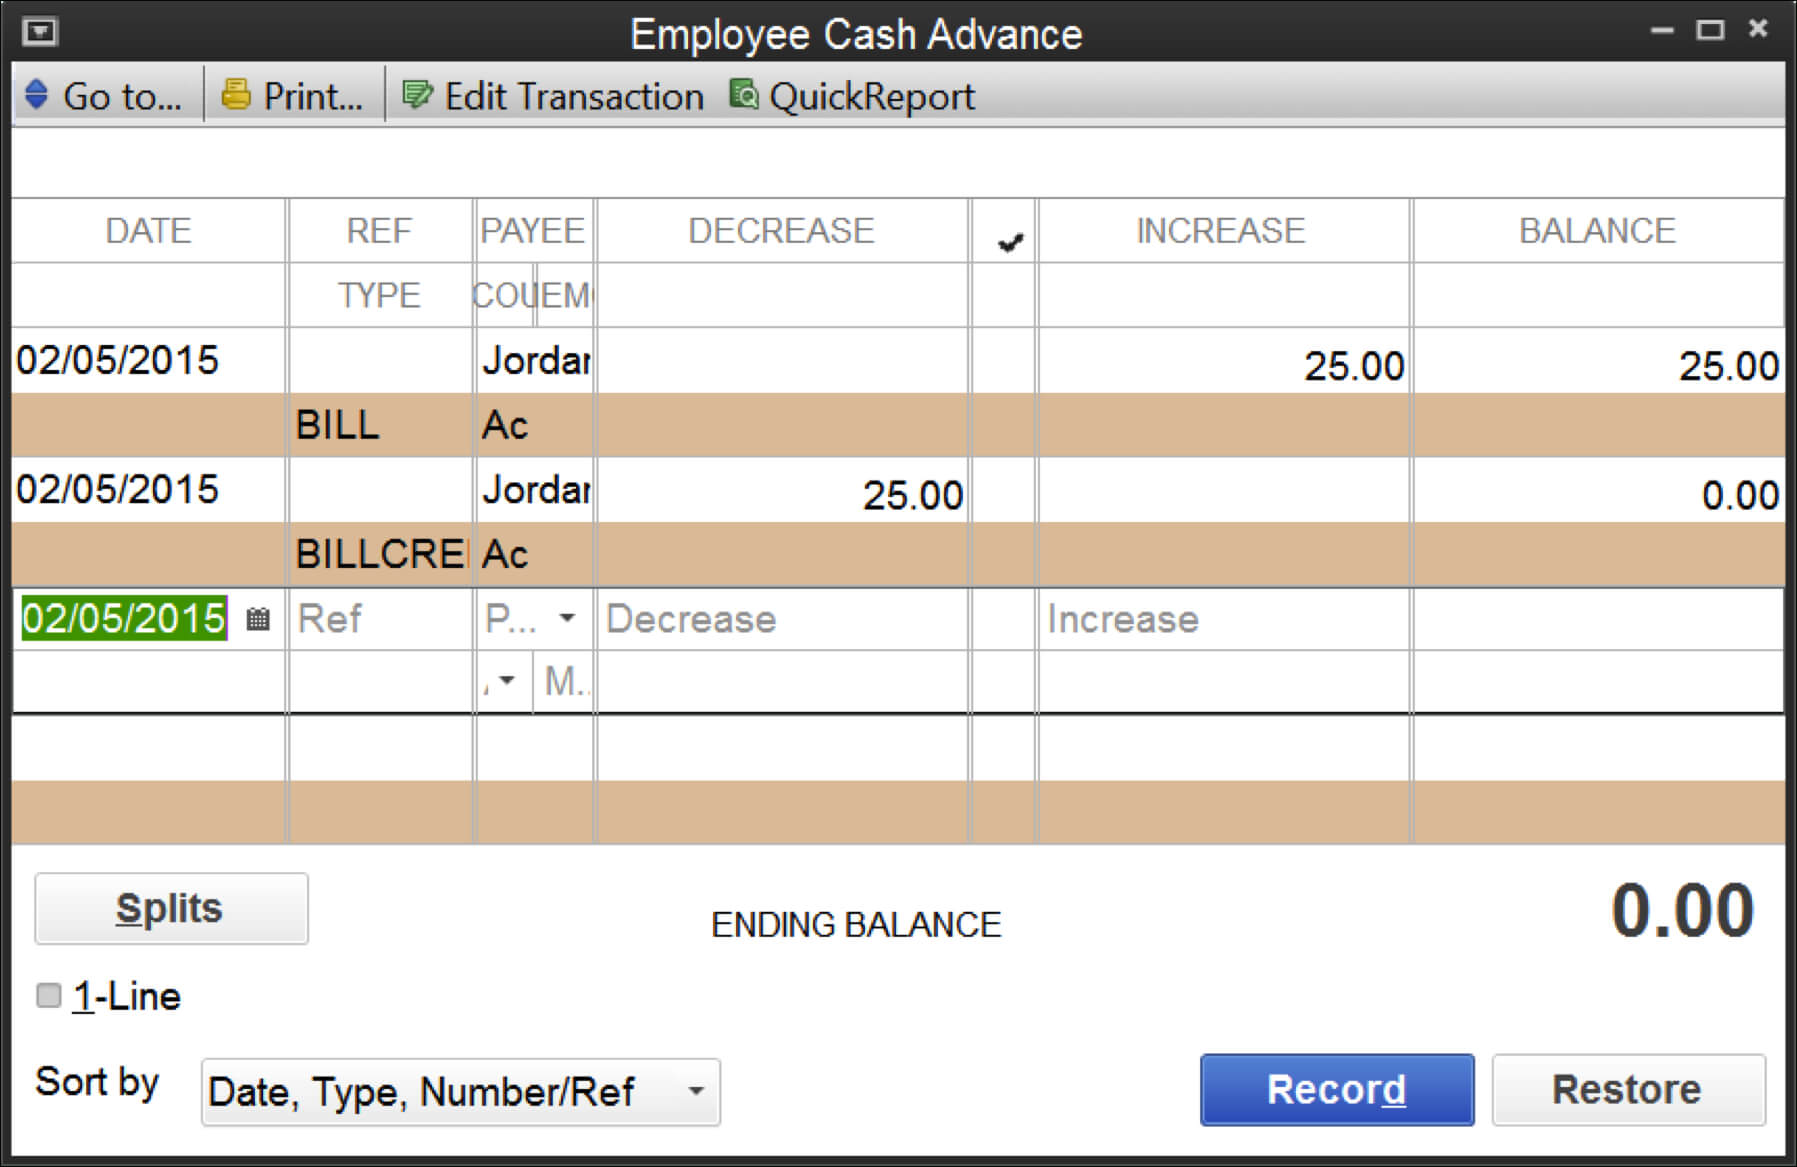 Gas Mileage Expense Report Template ] – Template Employee In Gas Mileage Expense Report Template